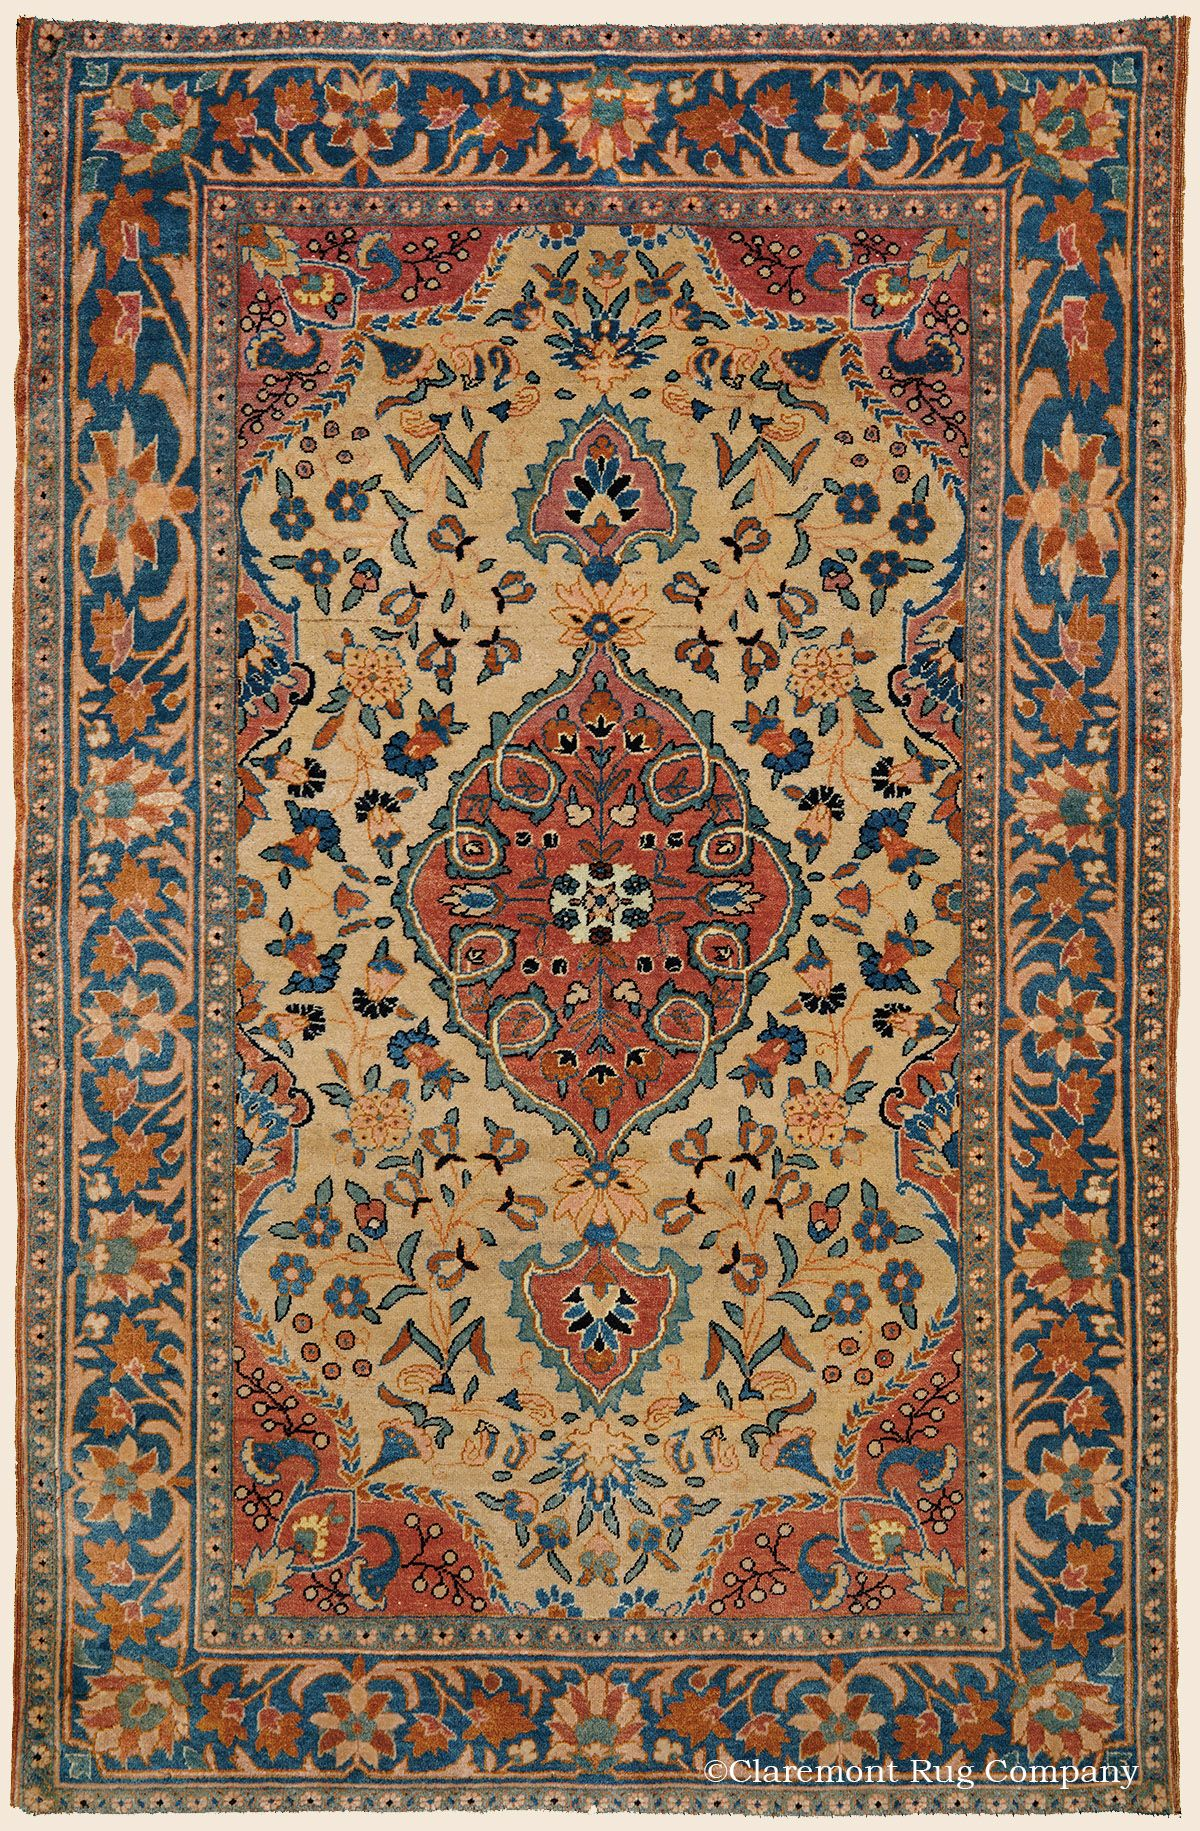 Antique Circa 1910 High Decorative Central Persian Kashan Rug 3 1 X 4 10 Price 7 500 Claremont Company